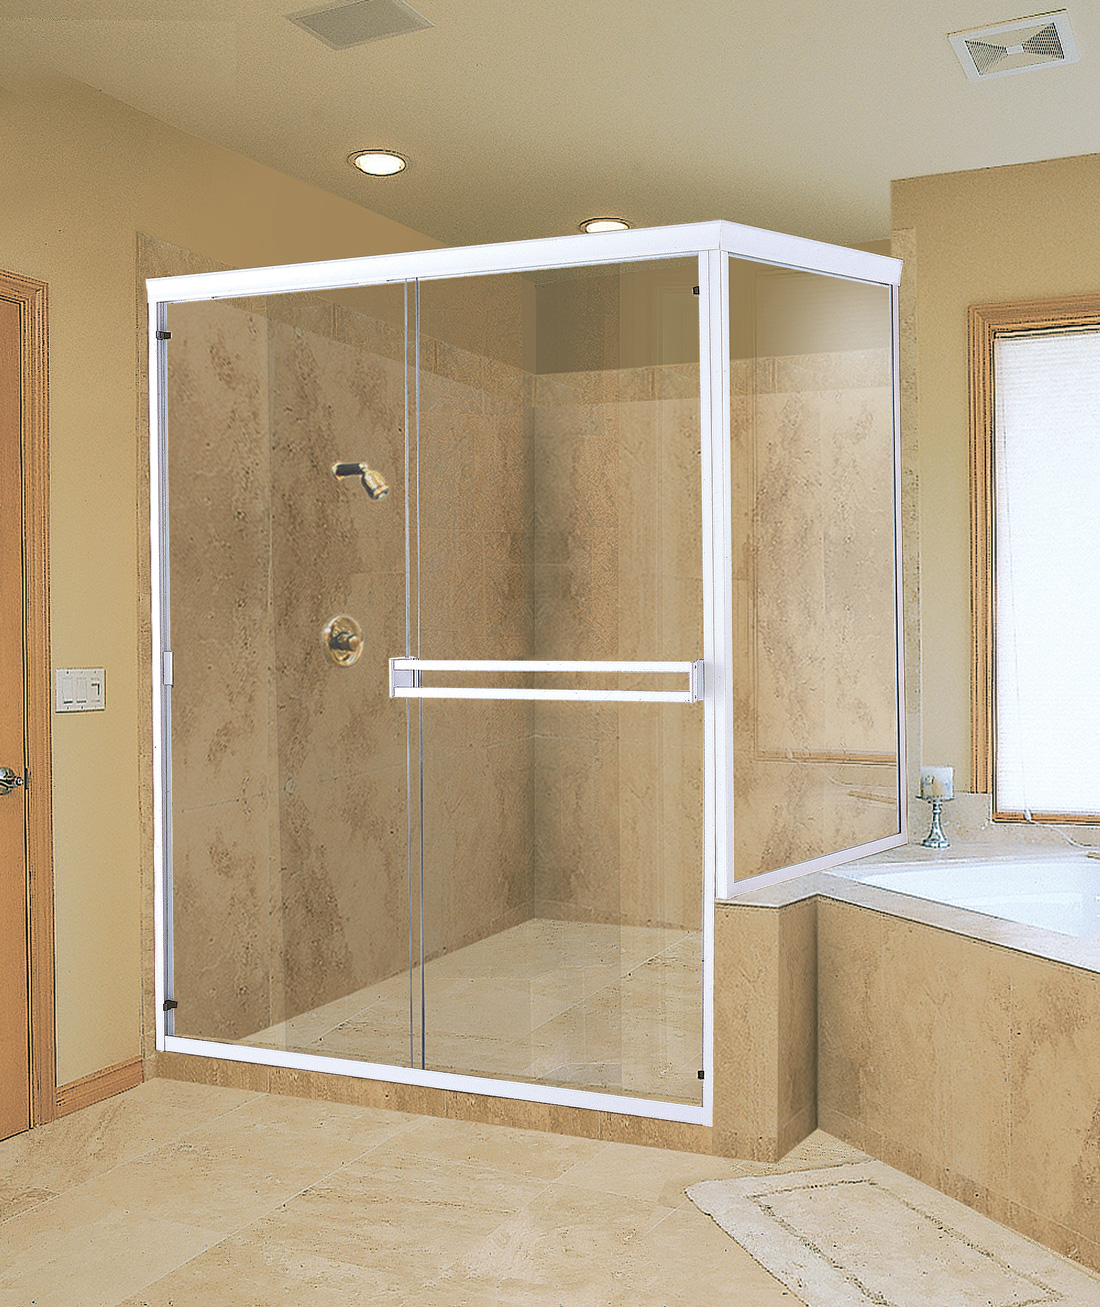 Frameless Shower Door Adds Dramatic Look To Bathroom Romanobdjs Soup